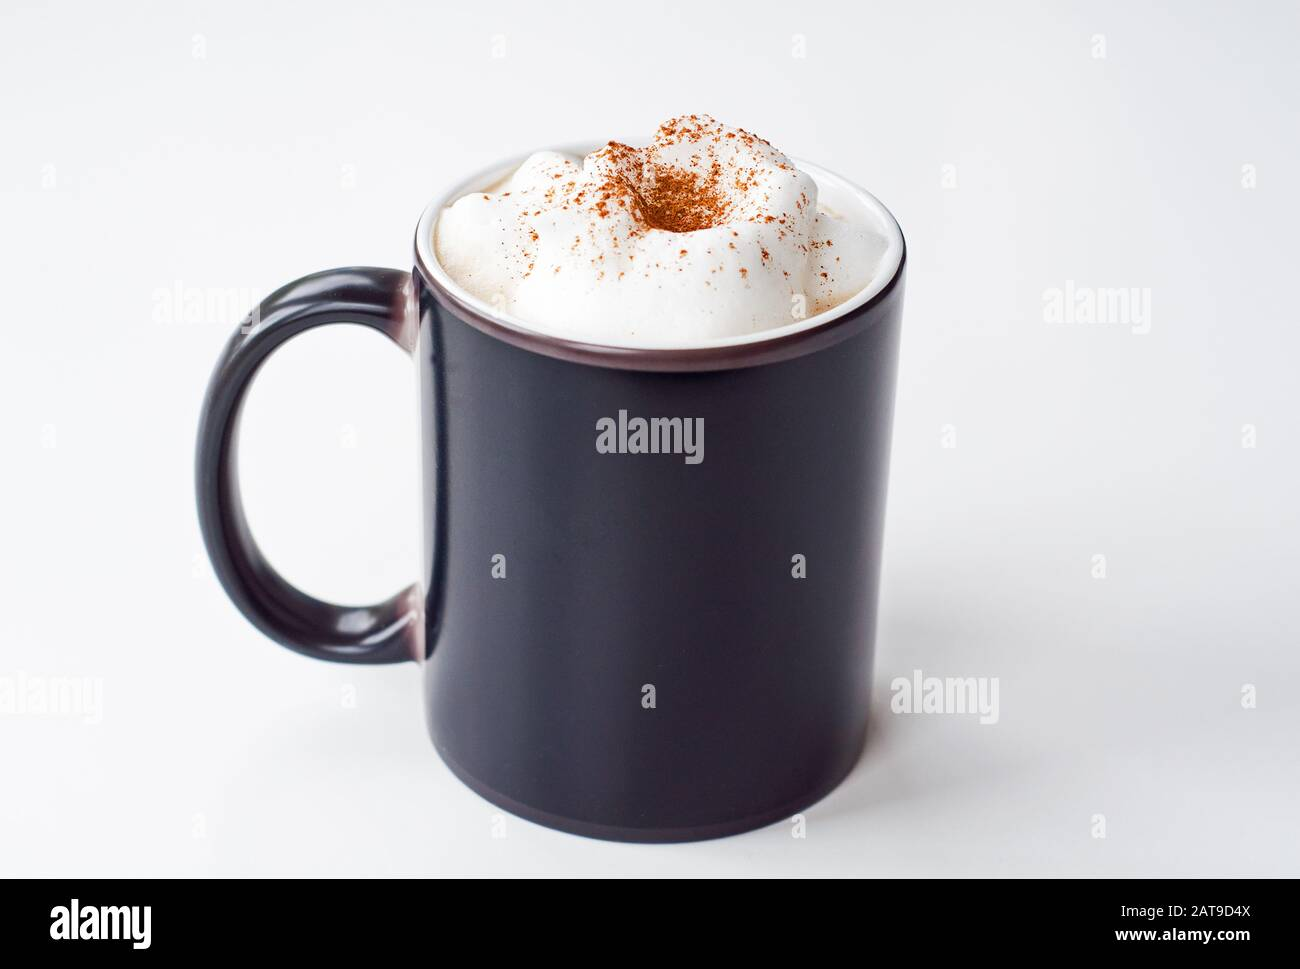 Black Coffee Cup With Milk Foam And Cinnamon On Top Coffee Latte Has Room For Text